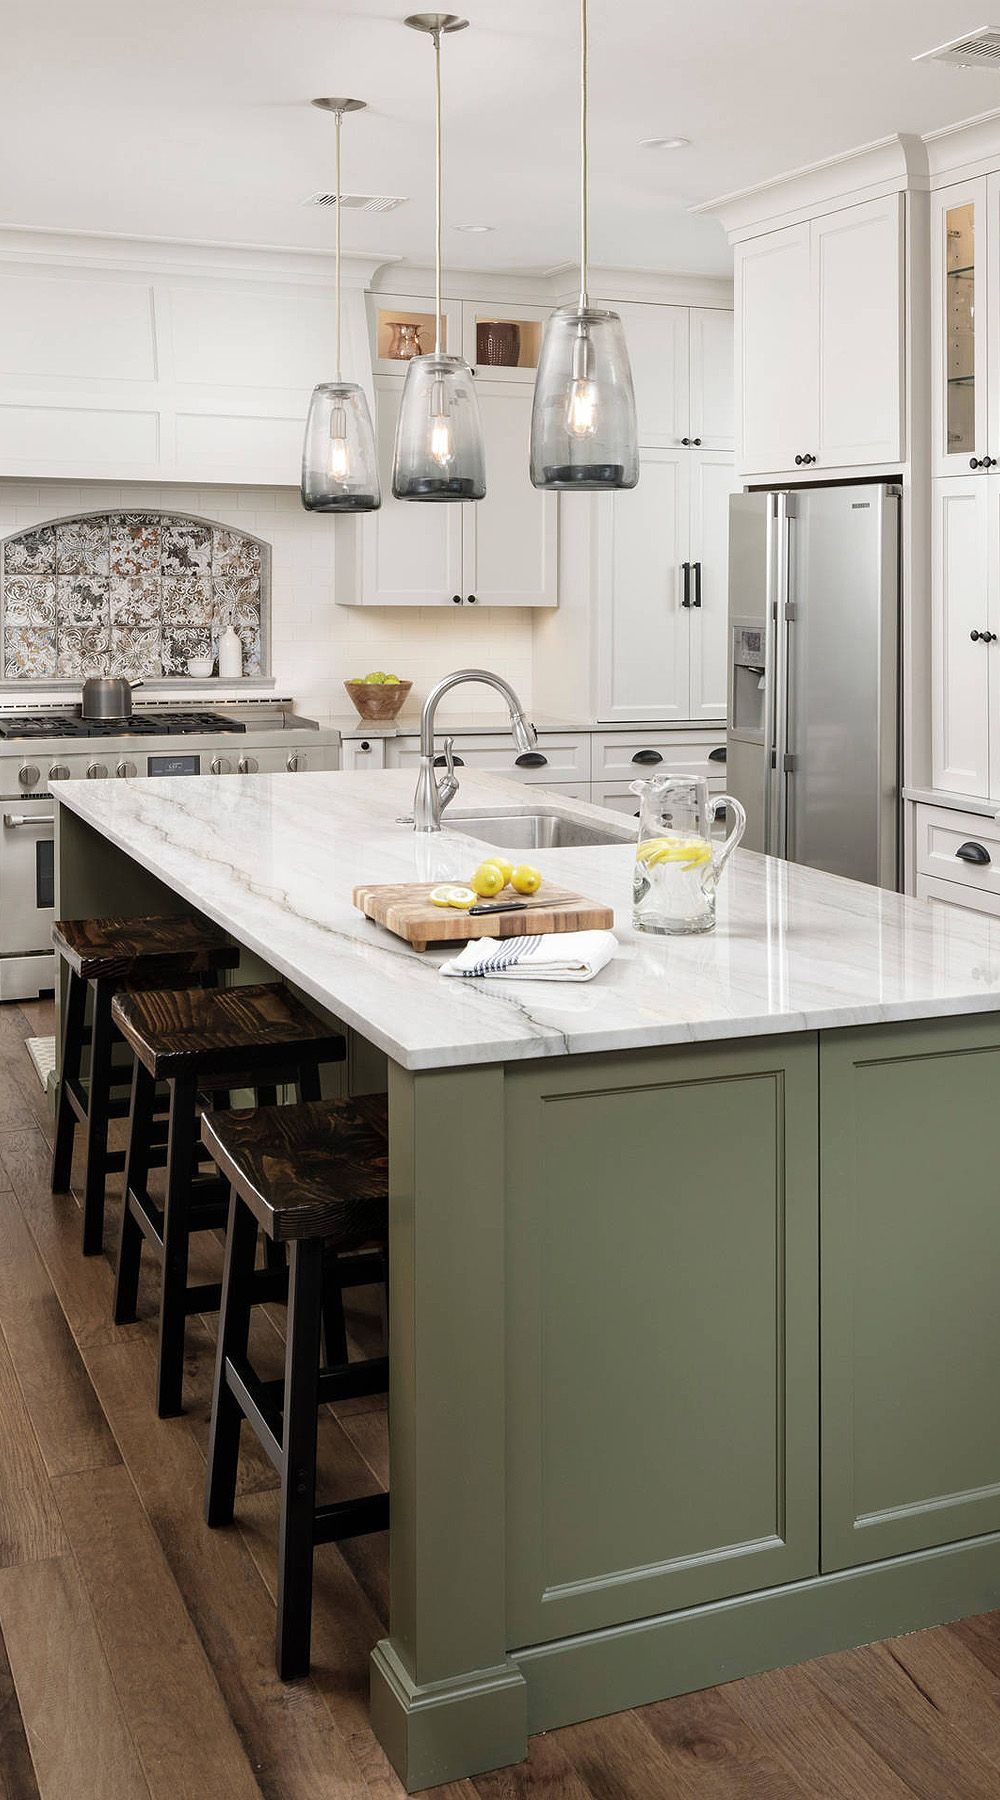 34 Top Green Kitchen Cabinets Good For Kitchen Get Ideas In 2020 Green Kitchen Cabinets Green Kitchen Island Kitchen Interior